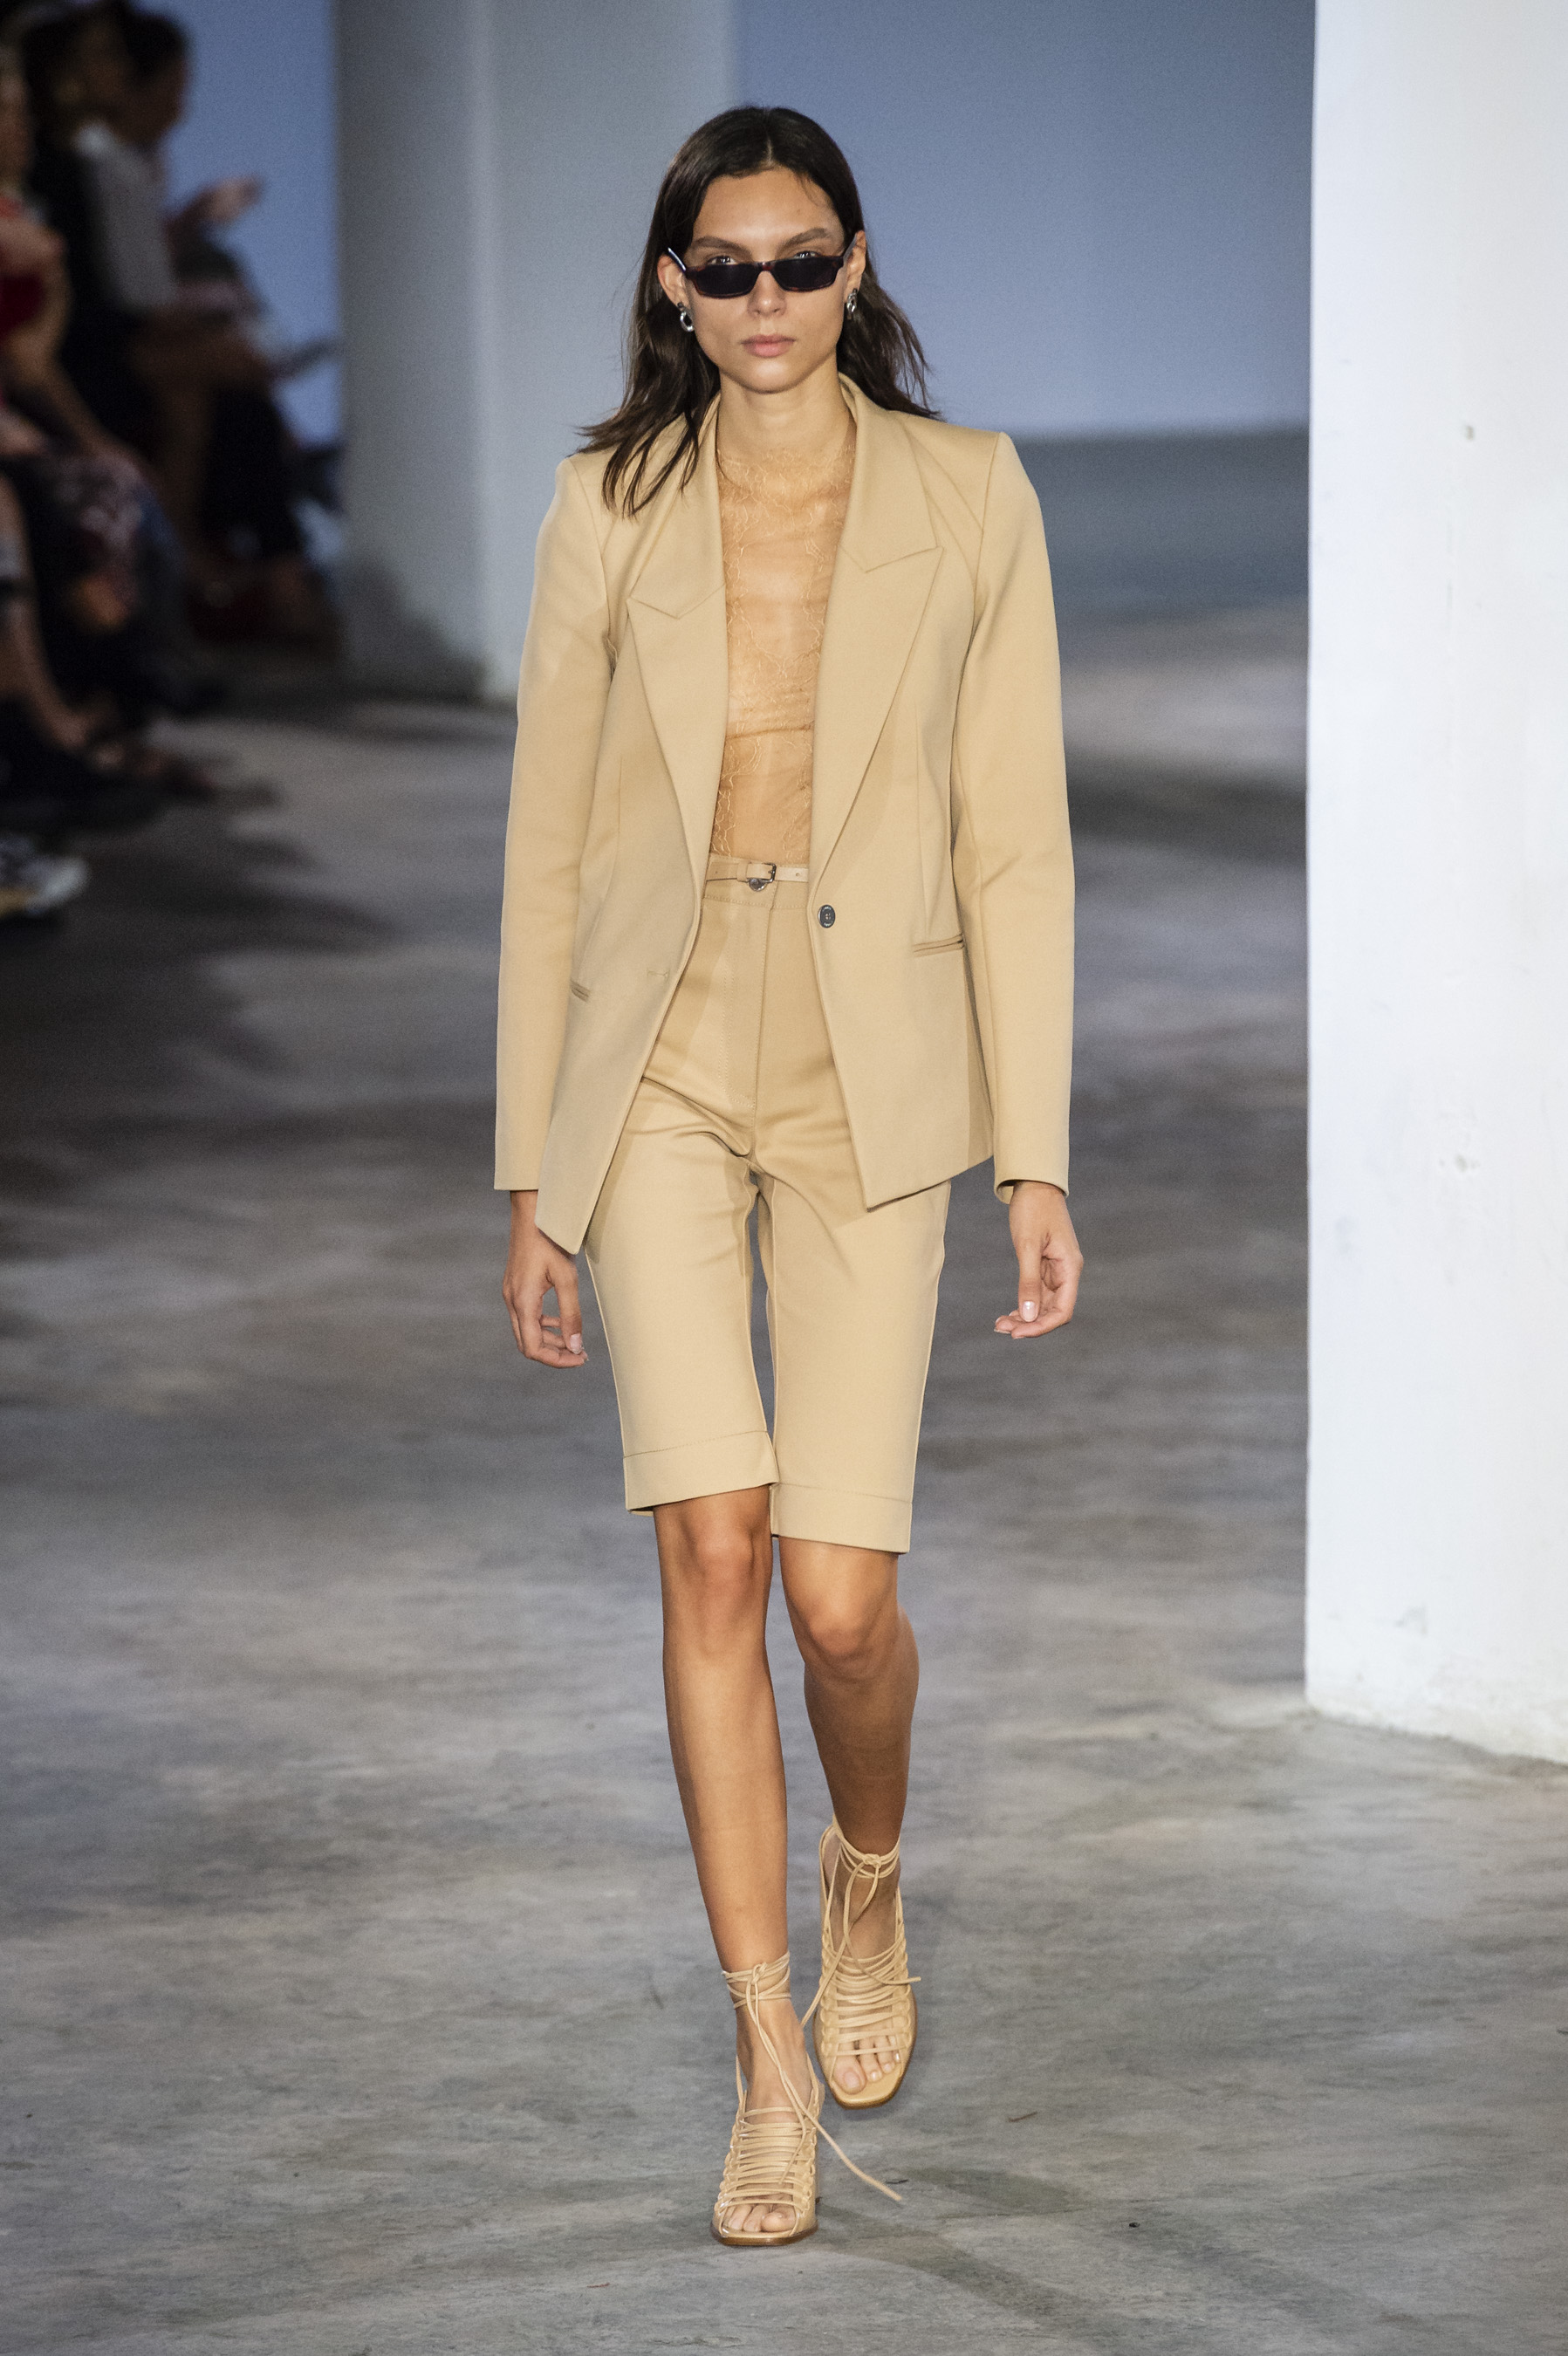 Dion Lee Runway Slim Blazer Lace Body Suit Over the Knee Shorts Tie Up Sandals Spring 19 RTW